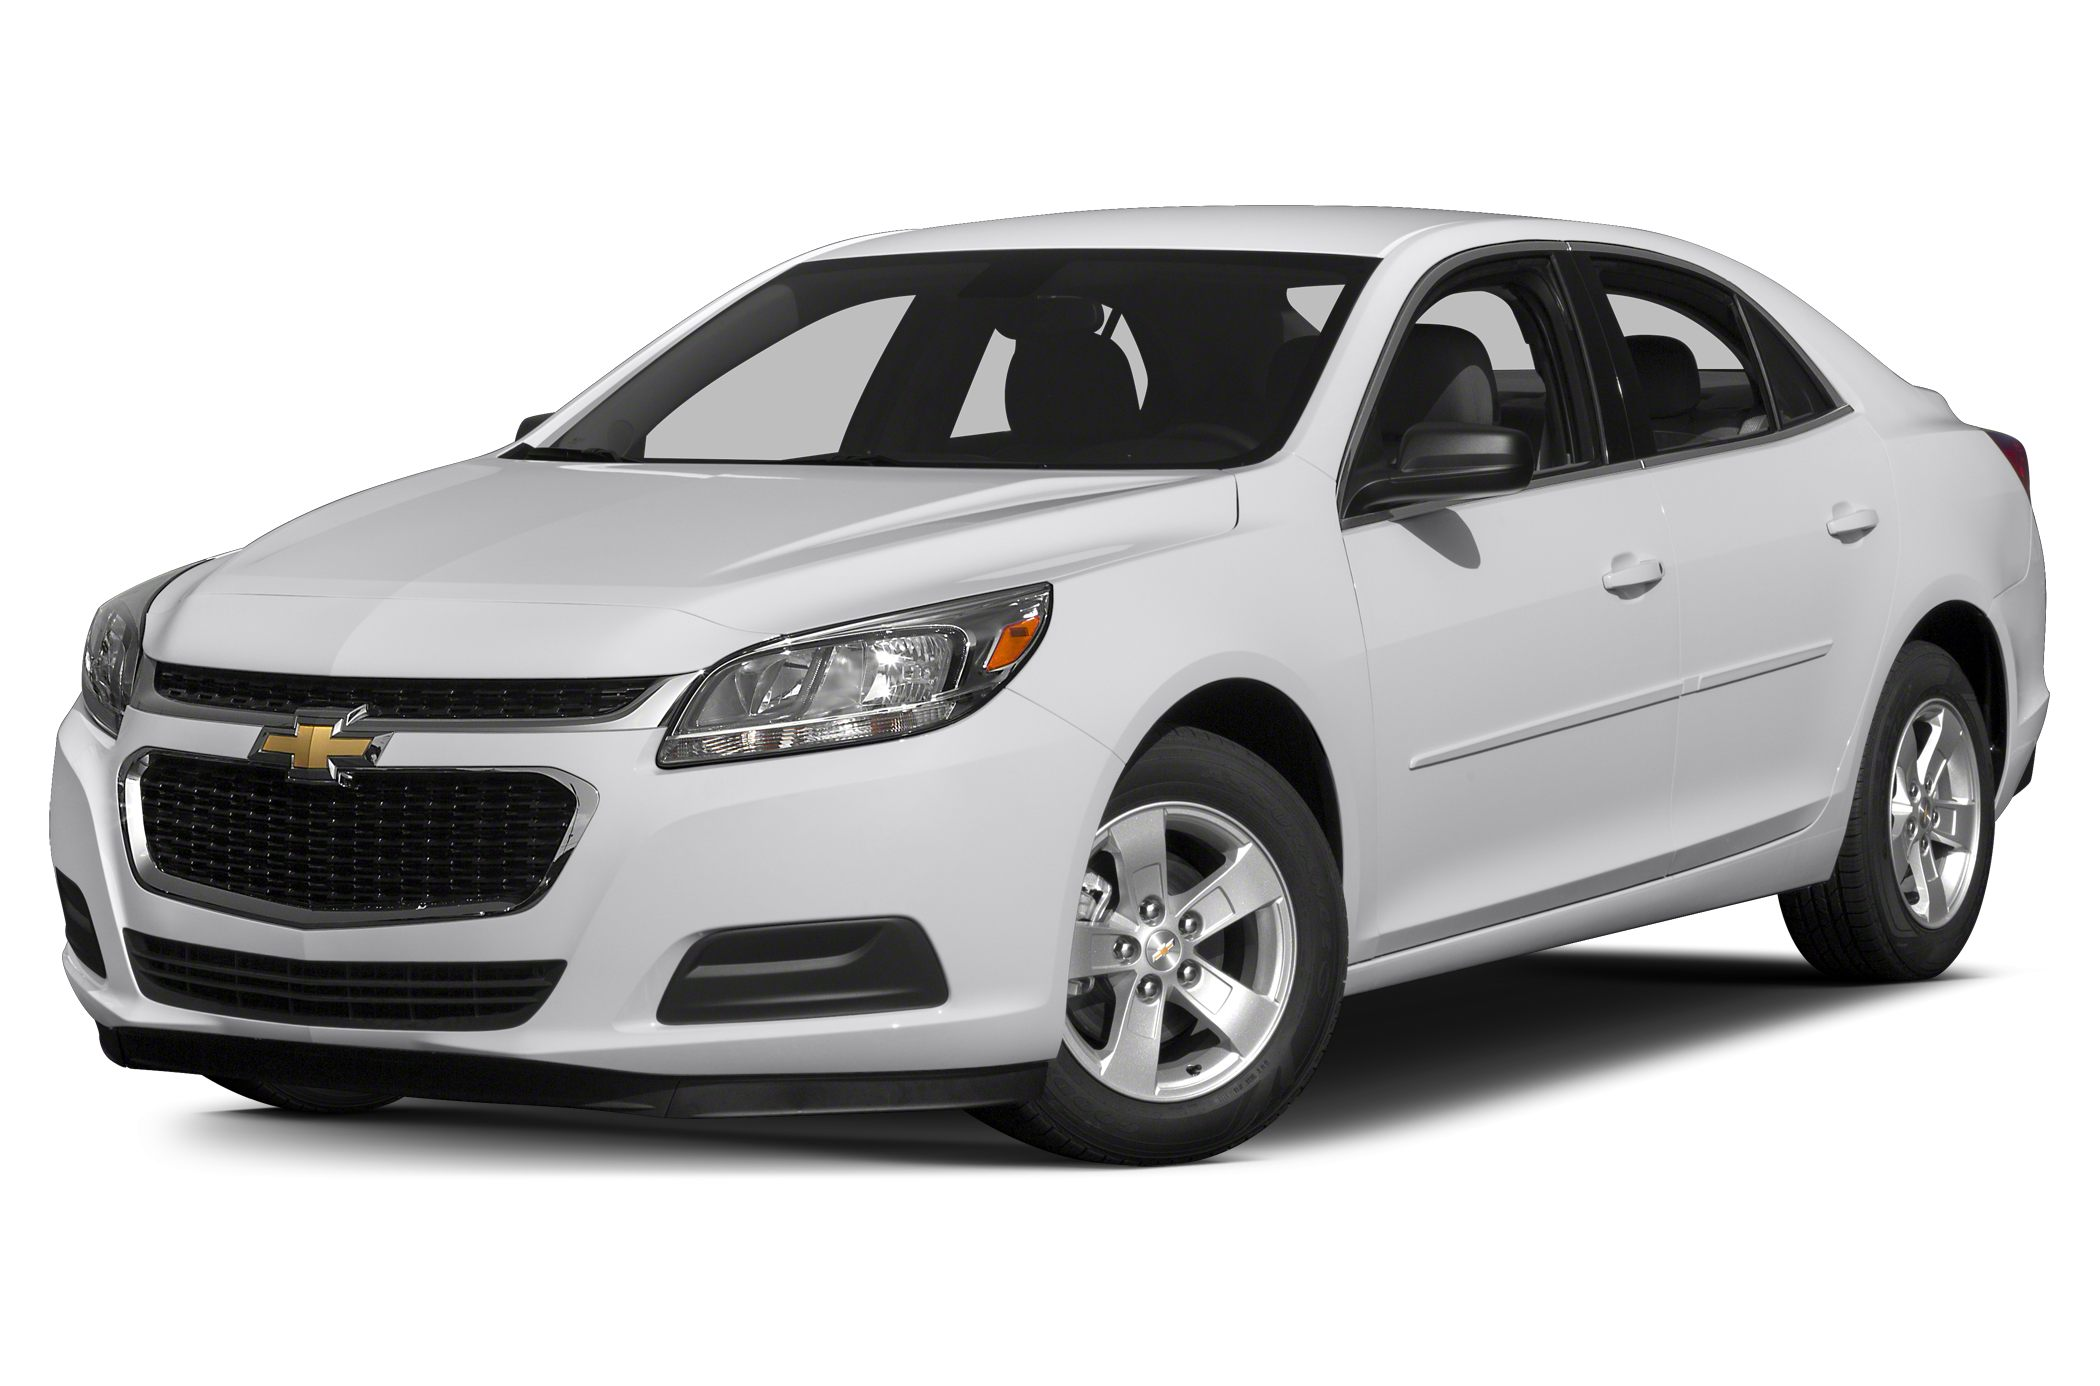 2014 Chevrolet Malibu 2LZ Sedan for sale in Franklin for $35,155 with 0 miles.